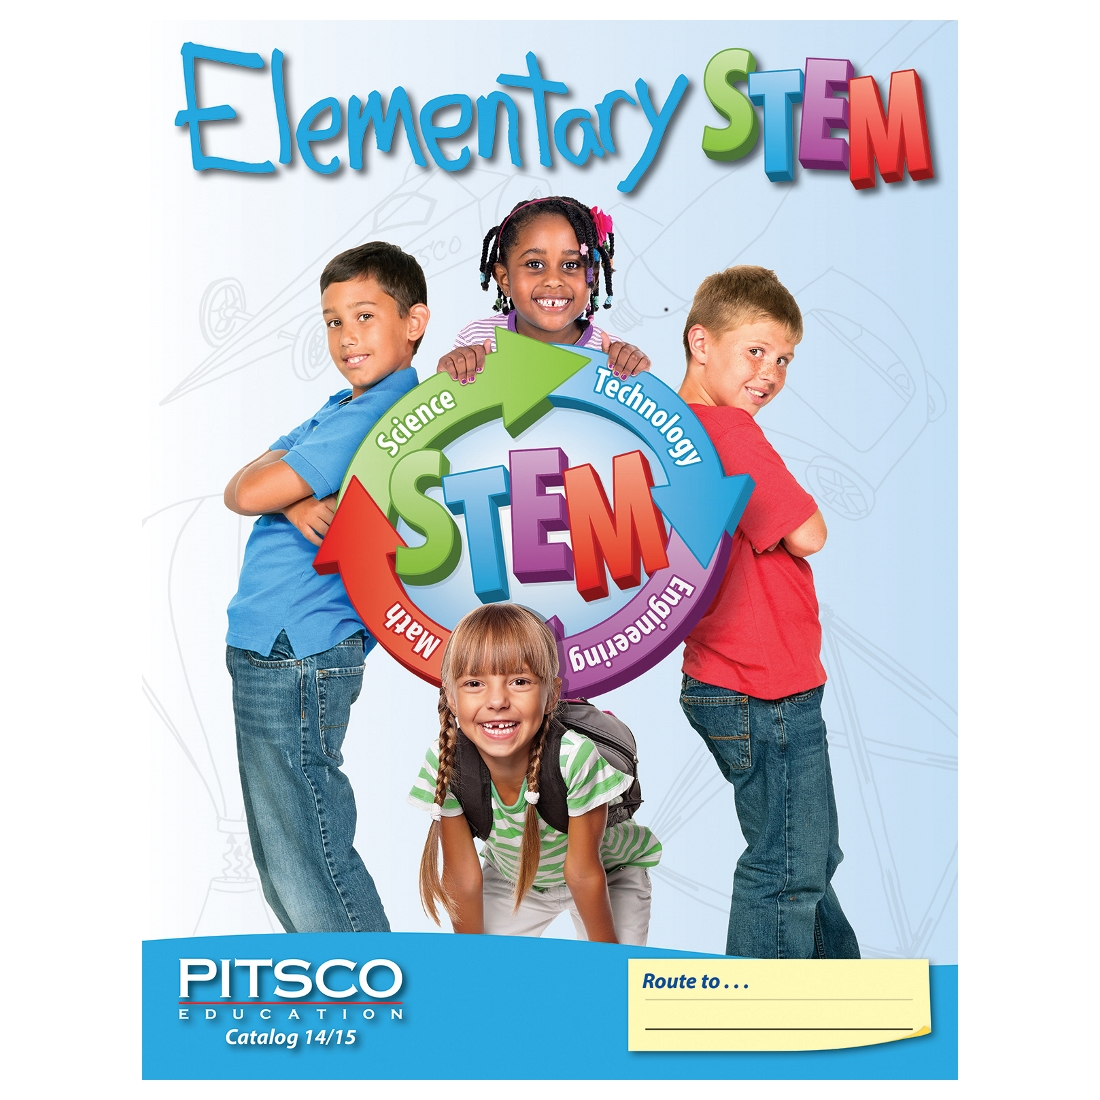 What Is A Stem Elementary School: Elementary STEM Catalog Features Activities, Curriculum